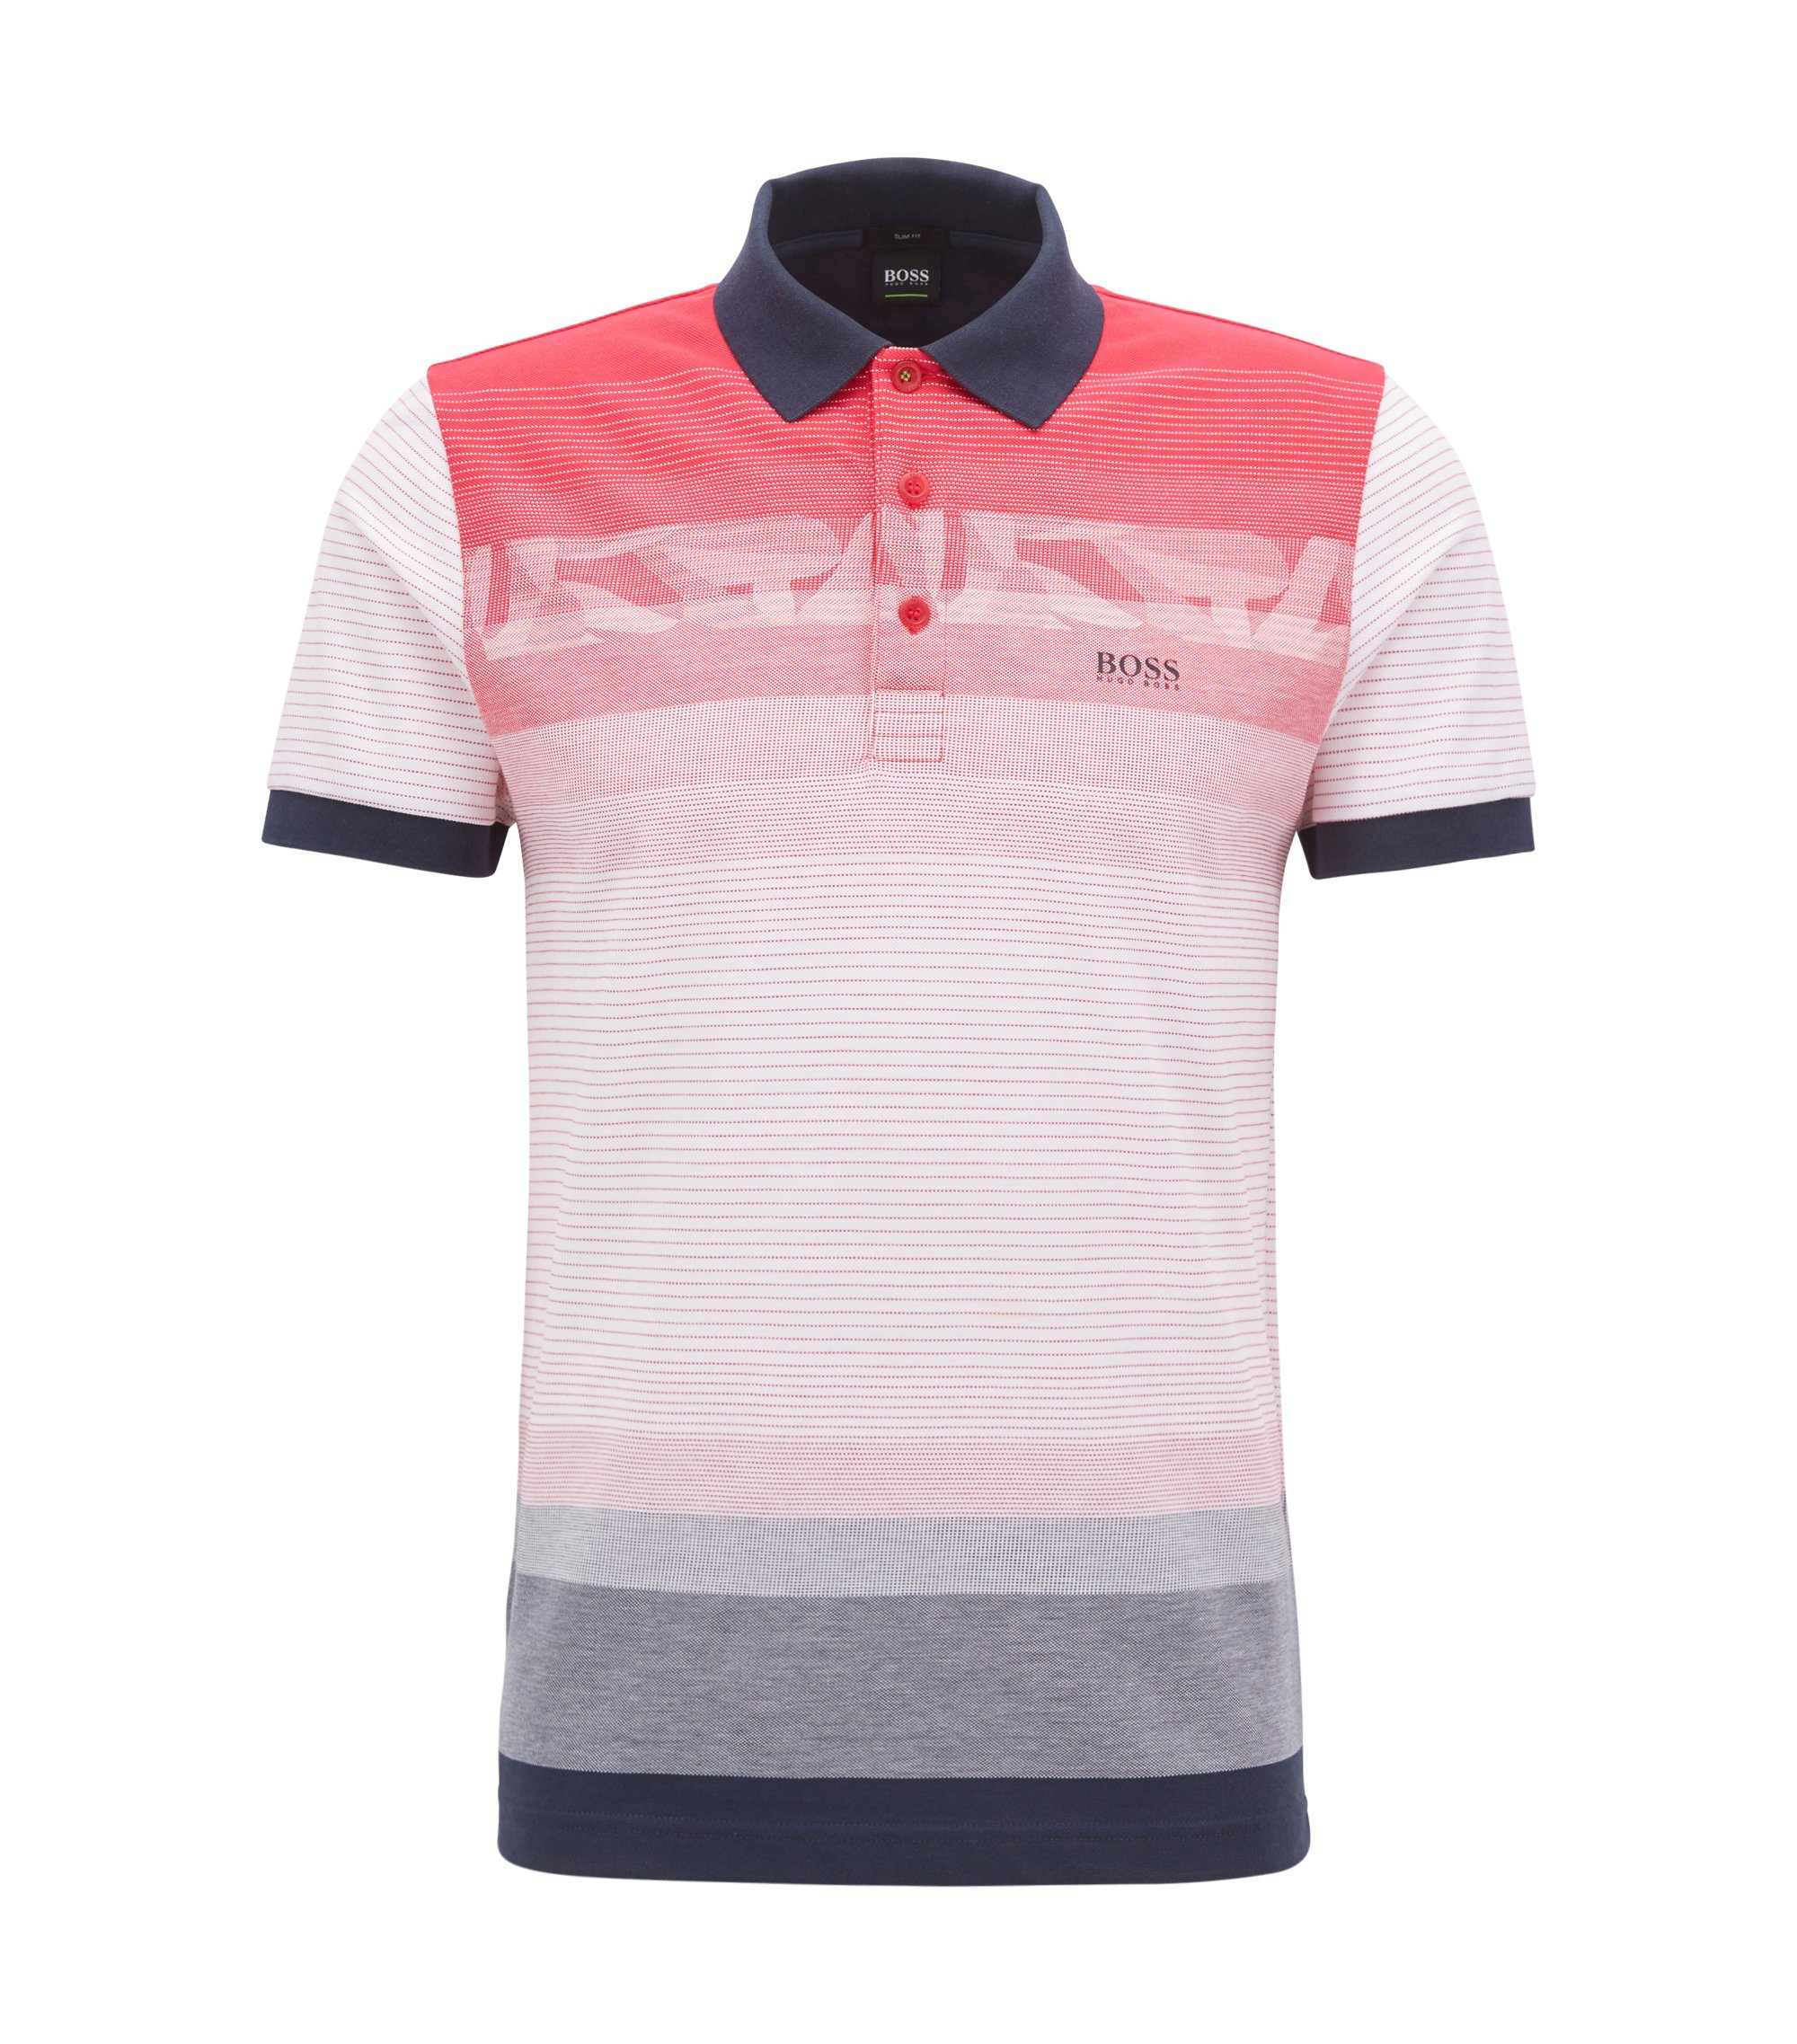 Polo Slim Fit à motif en piqué de coton, Rose